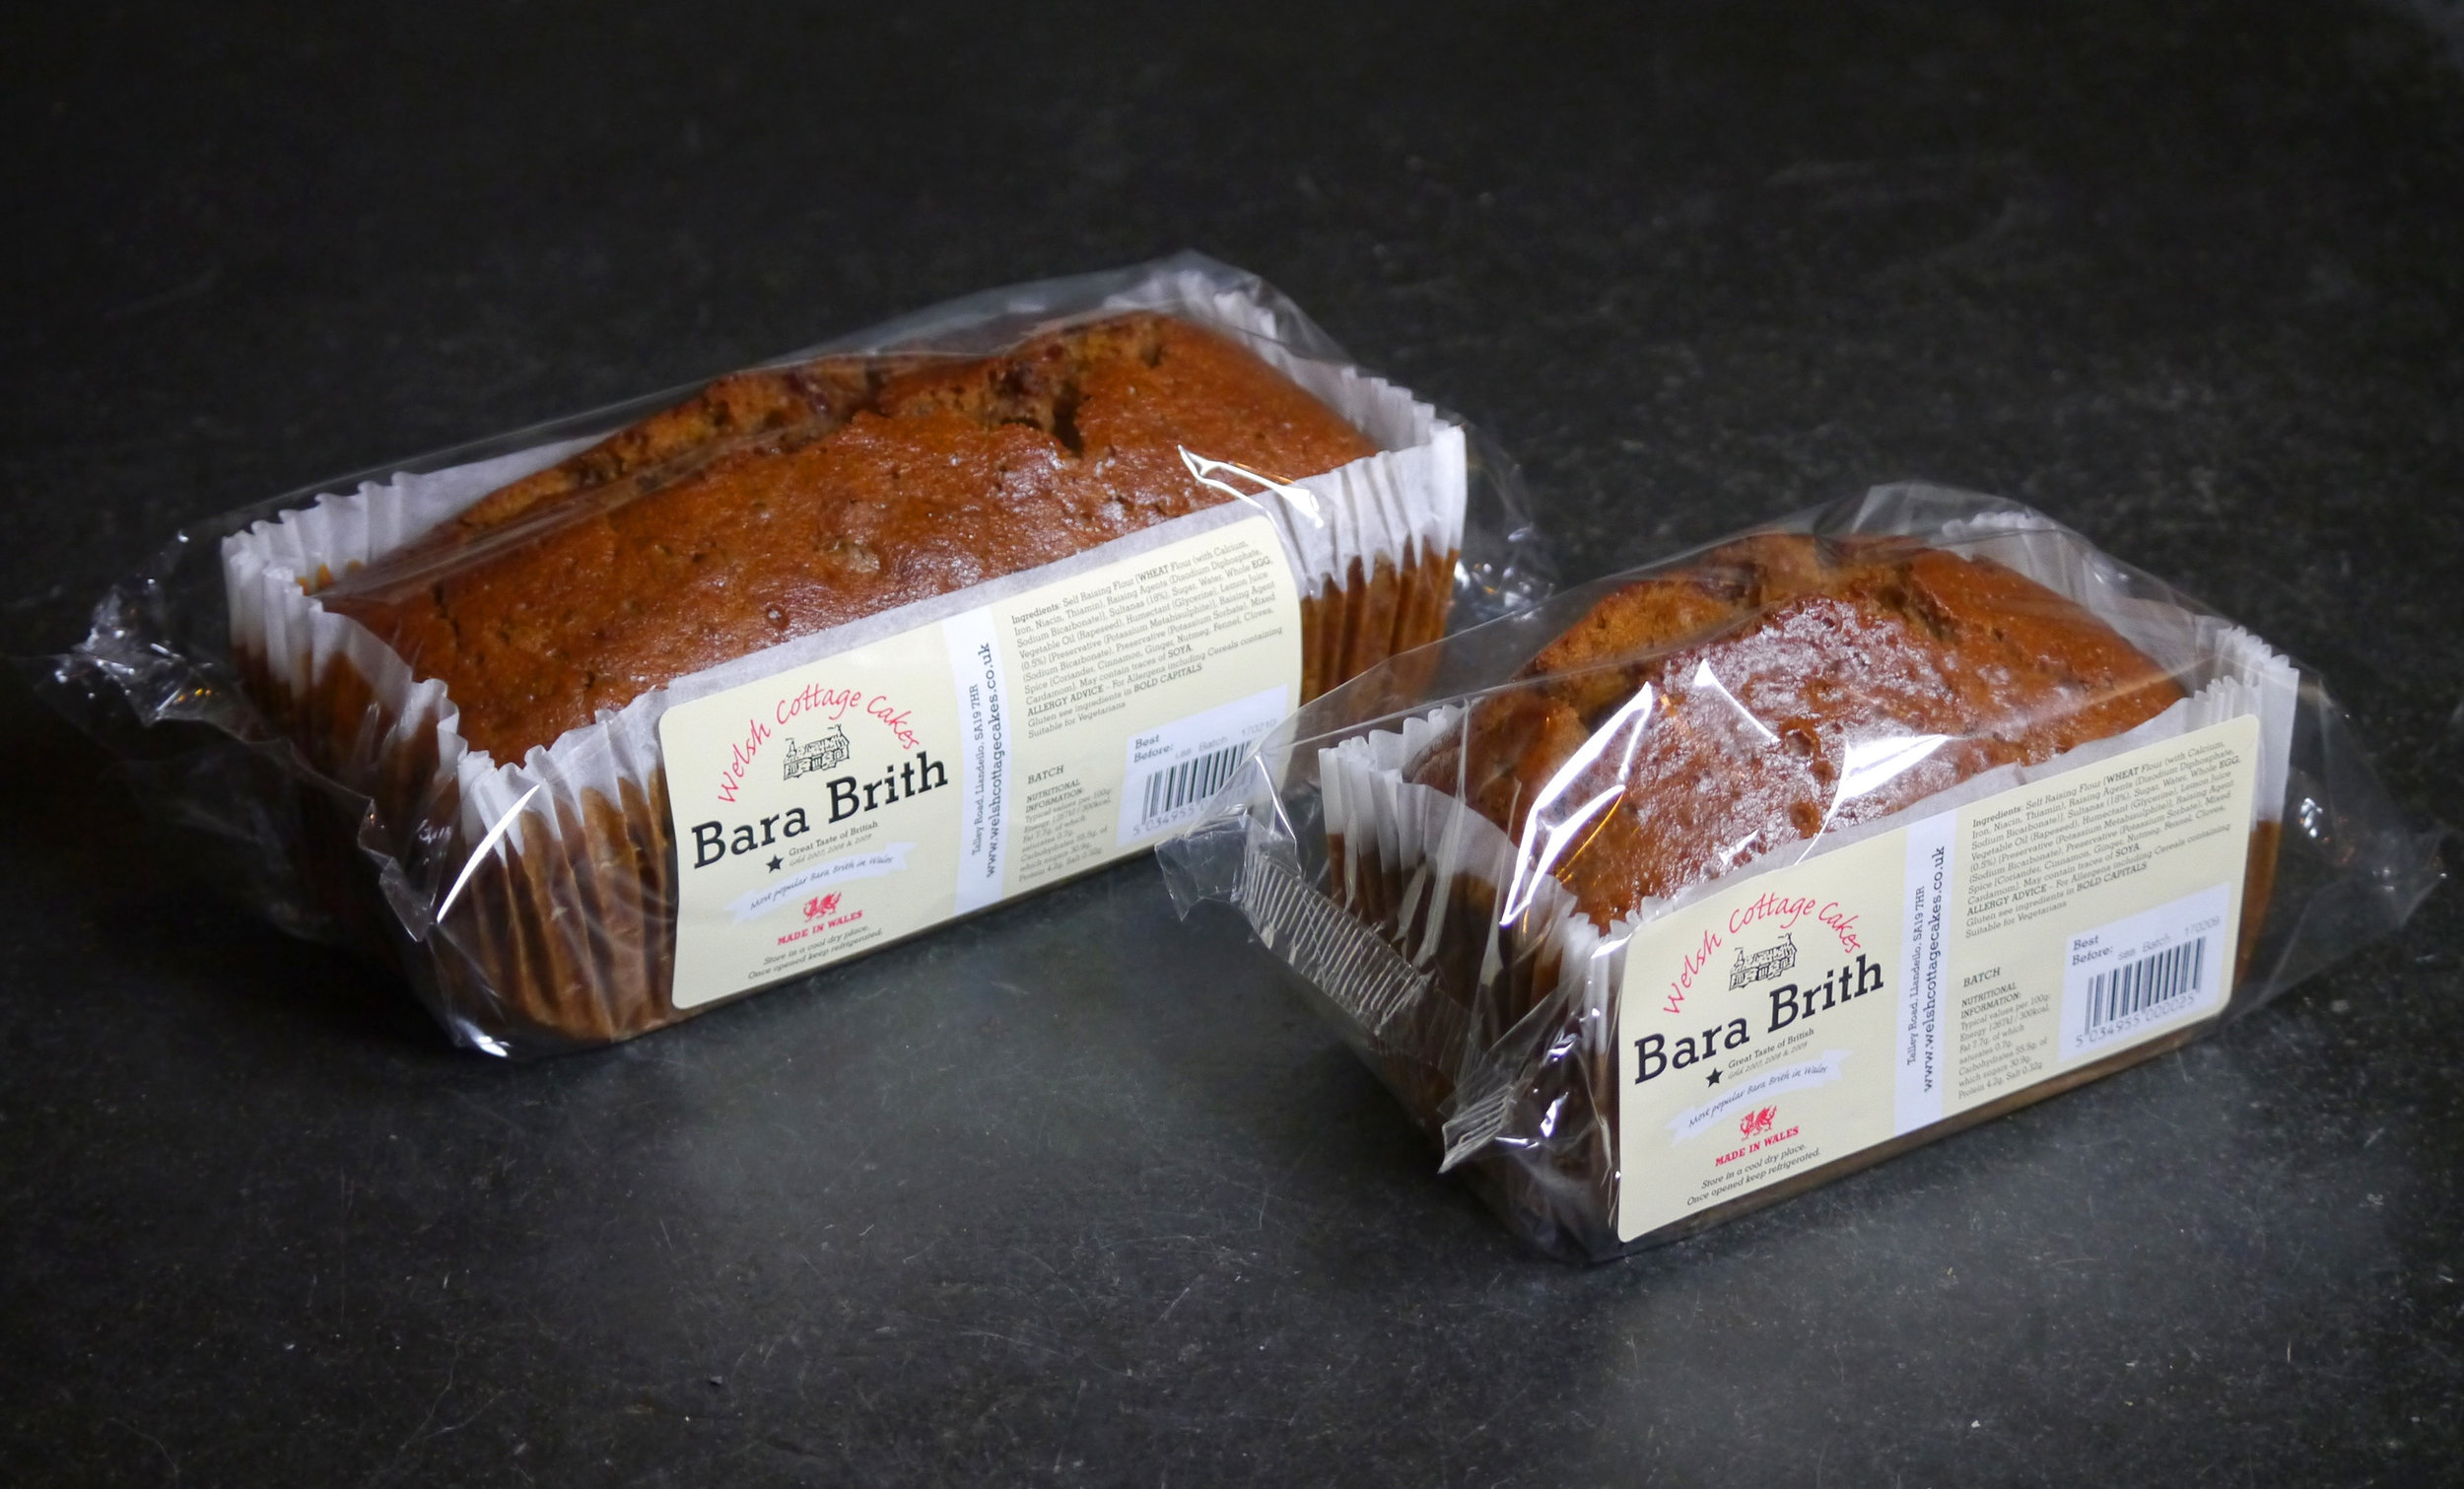 Bara Brith packshot